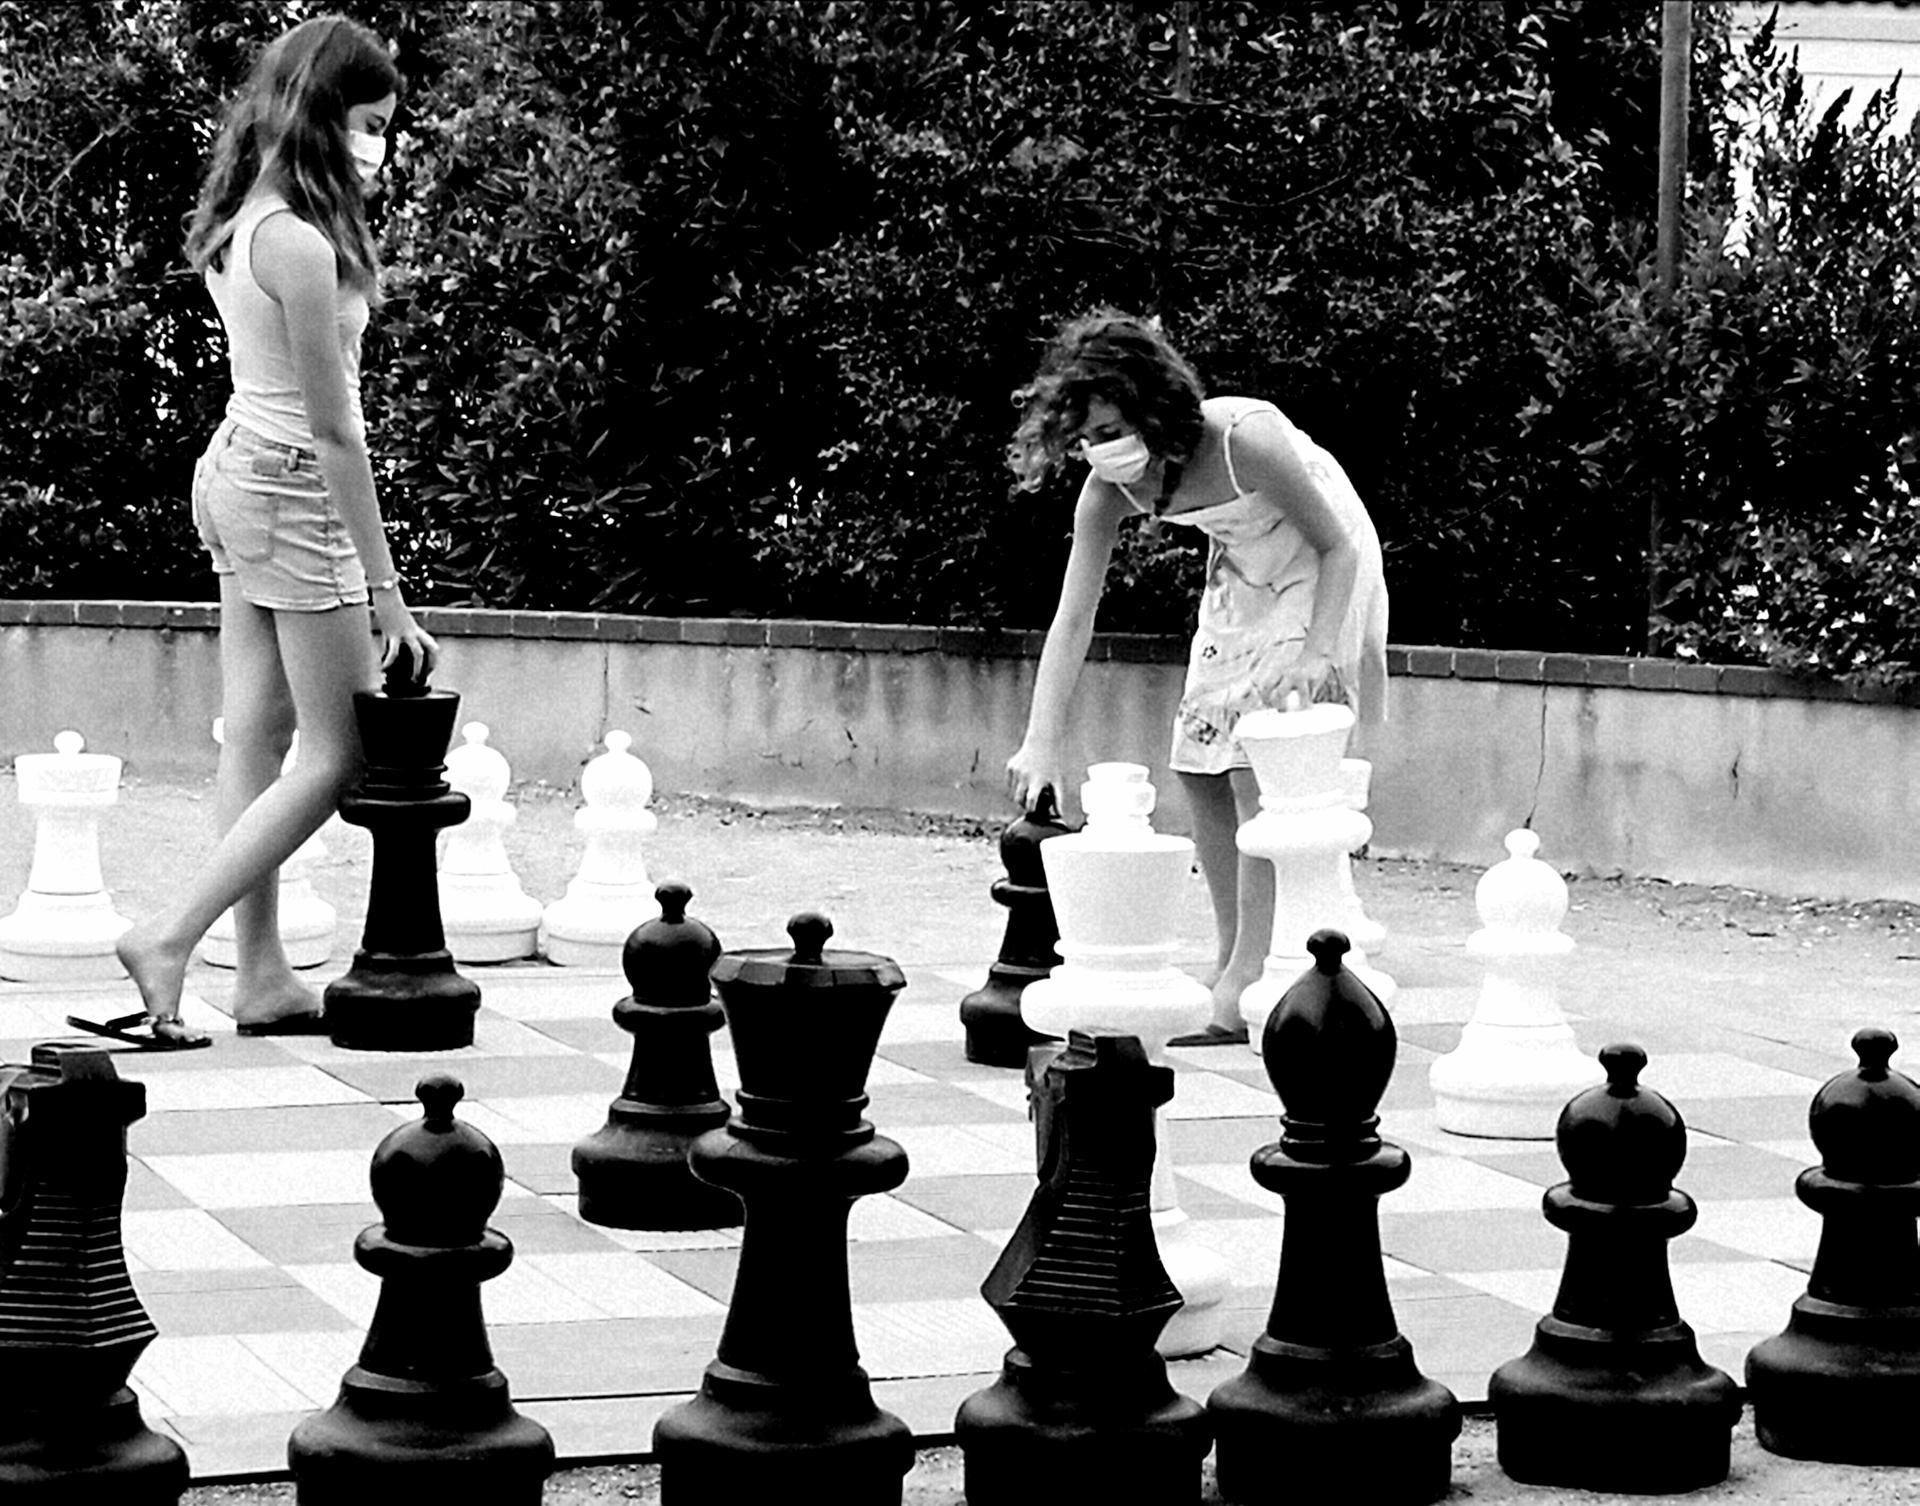 Black and White game